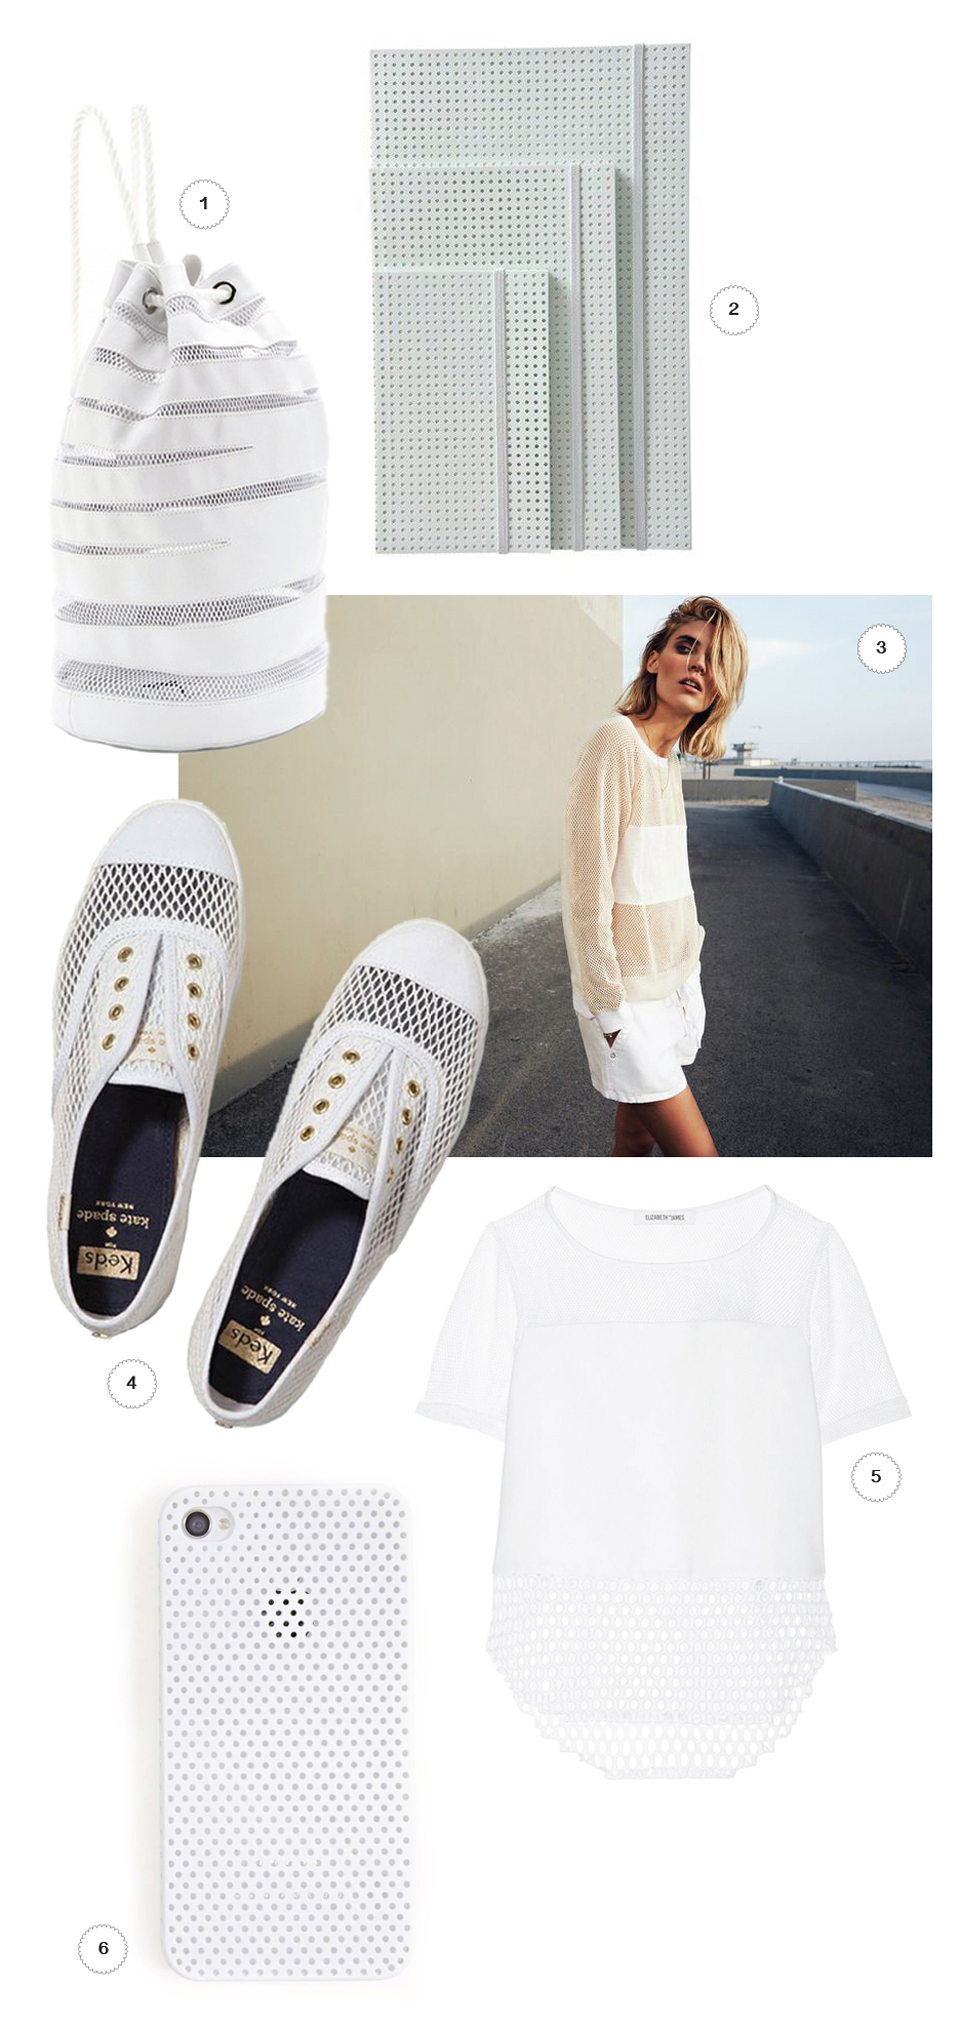 1// DKNY x Opening Ceremony leather,DailyCandy2// Mesh Notebooks, La Fabrika3// Spring Collection 2014, Sanctuary Clothing4// Kate Spade Champion Mesh Sneakers, Keds5// Elizabeth and James Rider Top, NetAPorter6// Perforated IPhone Case, NastyGal